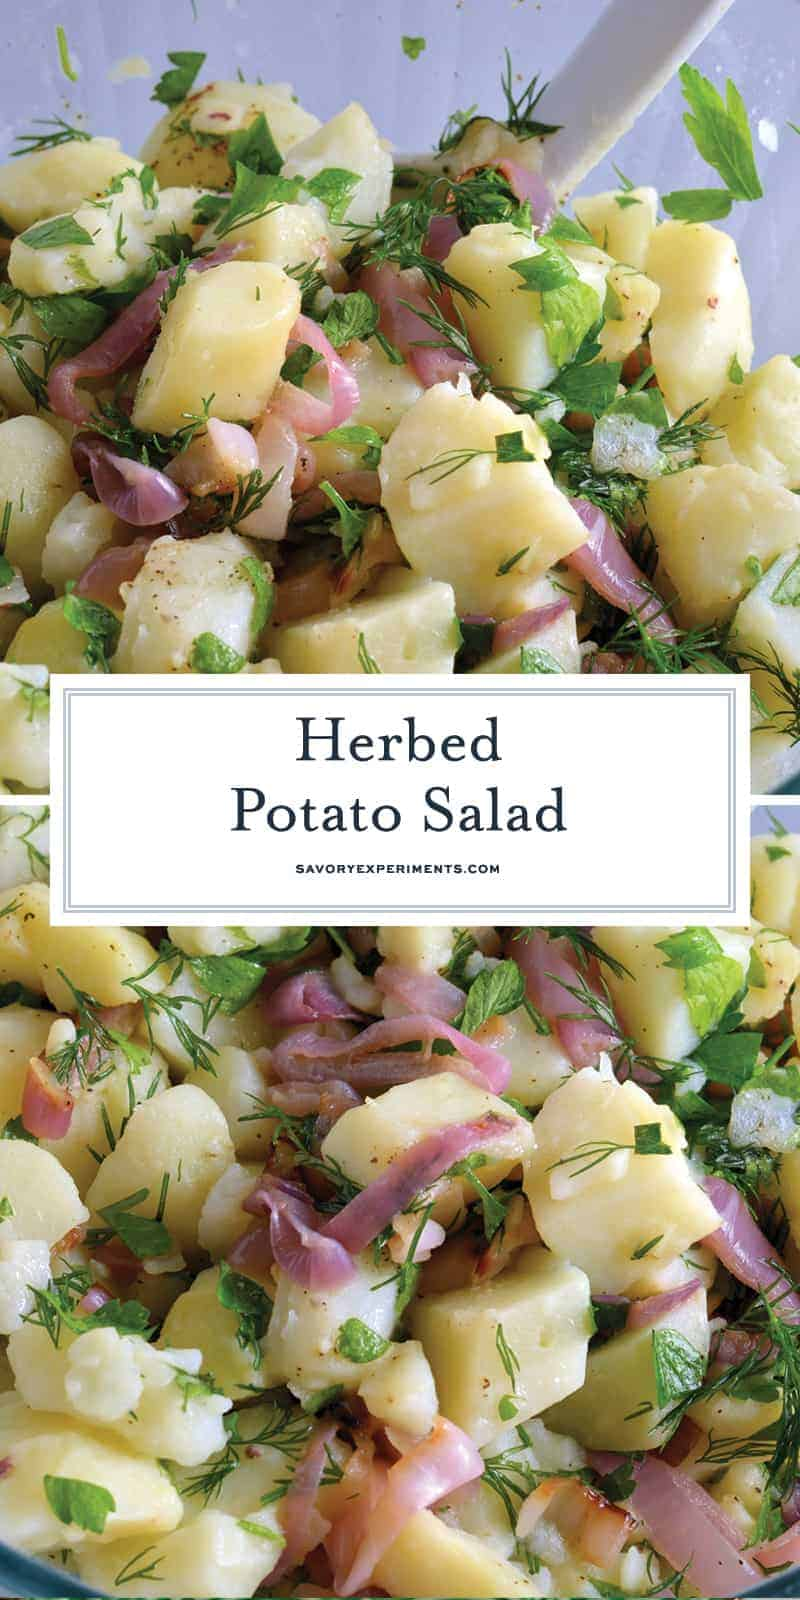 Herbed Potato Salad is mayo-free potato salad recipe that uses fresh herbs and mild white wine vinegar to add tangy flavor. Served chilled at your summer gathering! #nomayopotatosalad #potatosaladrecipe www.savoryexperiments.com